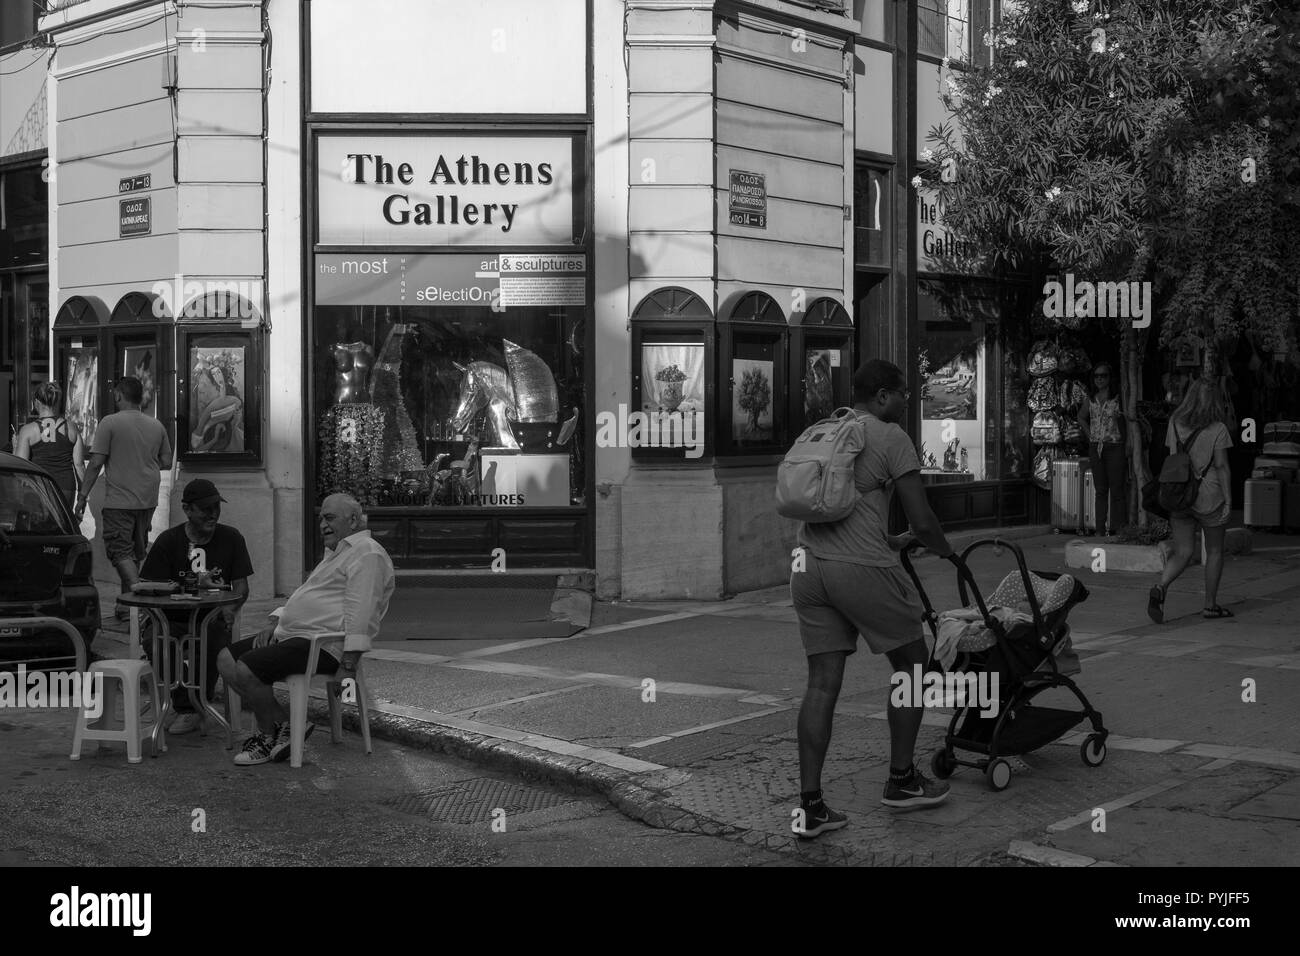 Sunday evening when shops are closed downtown Athens, people are more relaxed. - Stock Image